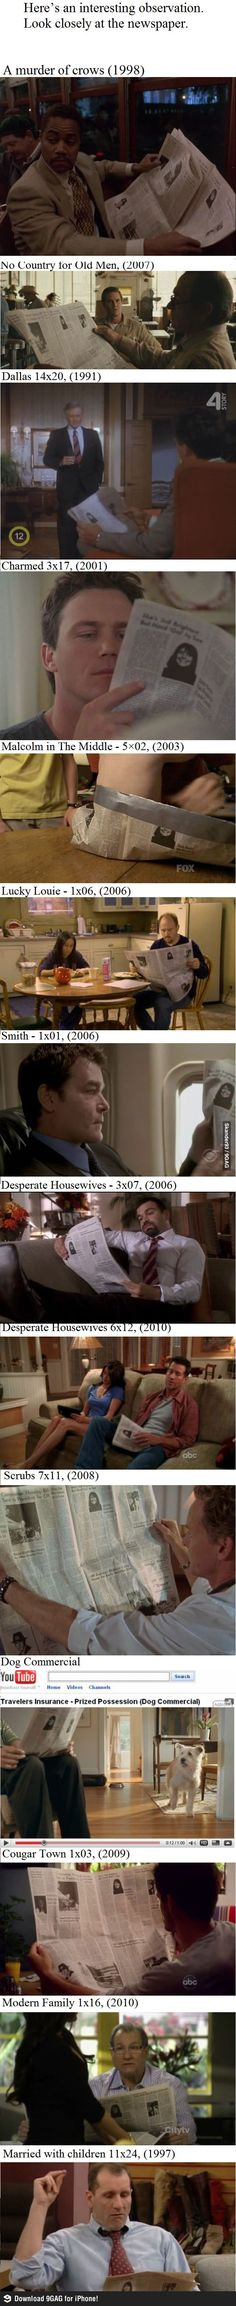 Same Newspaper in TV Shows. What the actual fu?